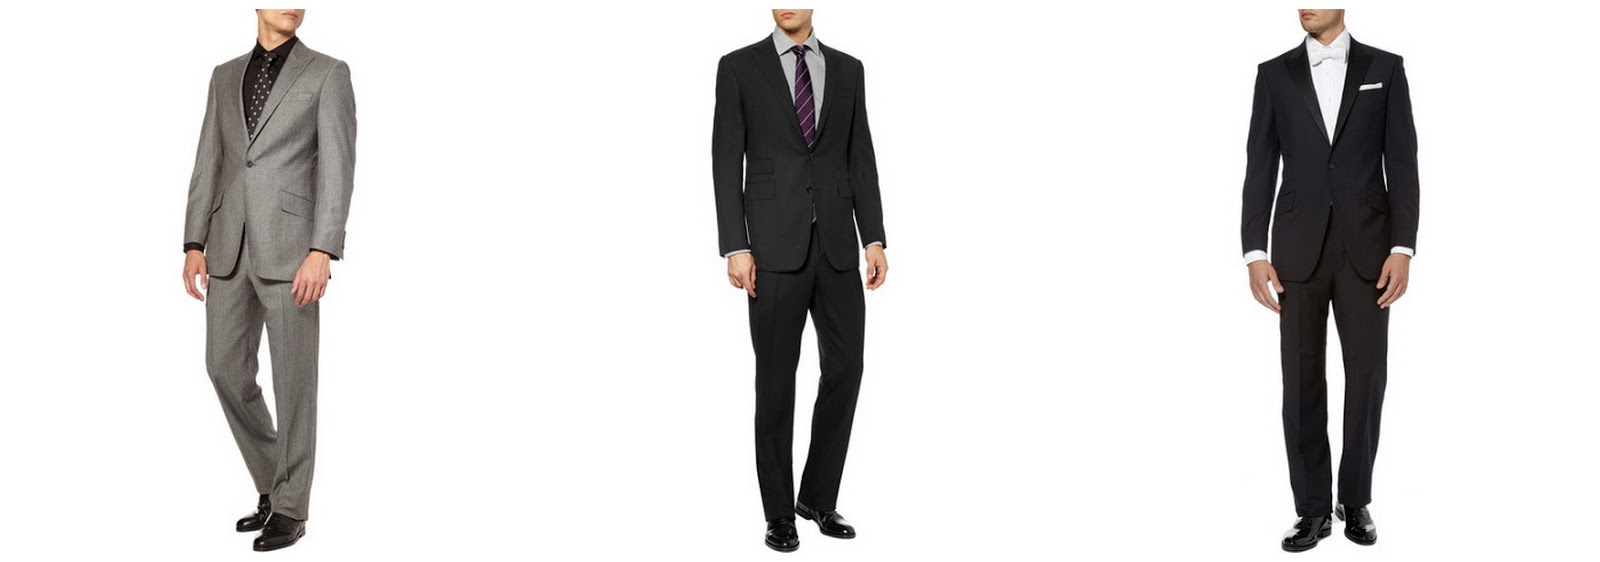 Raining Blossoms Prom Dresses: Men Suits for Prom in 2013